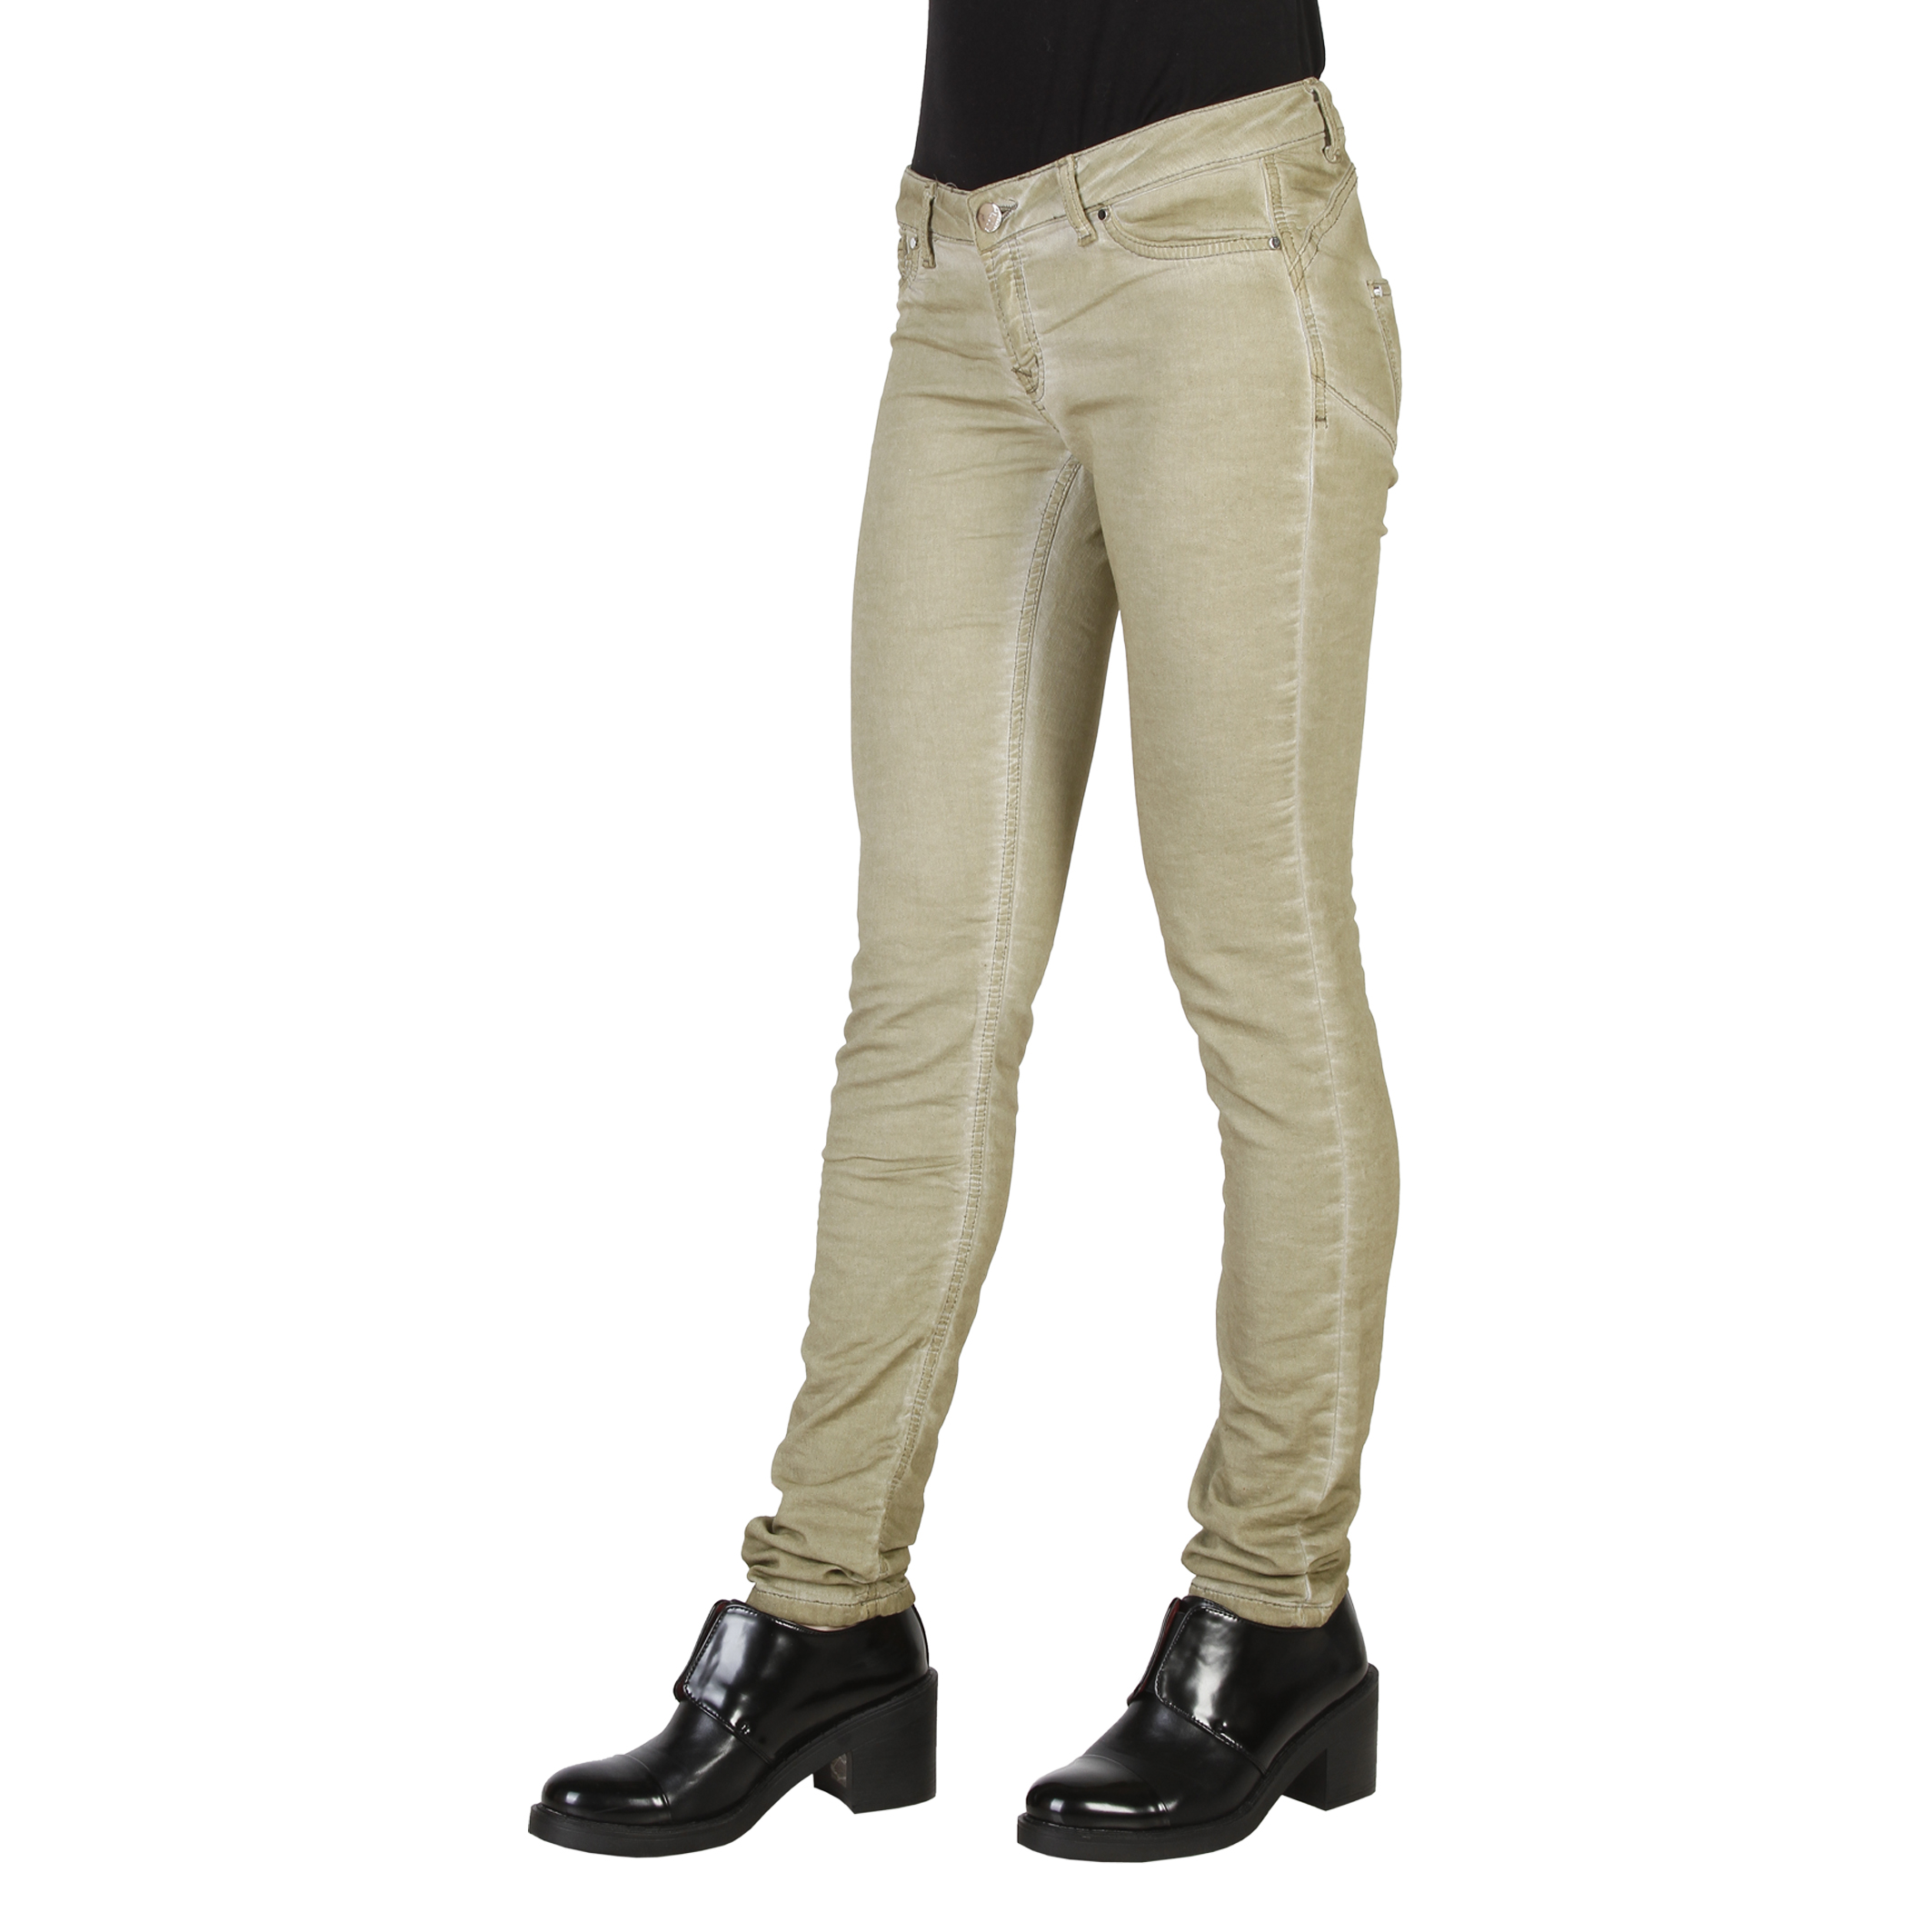 Jeans   Carrera Jeans 000788_0980A green